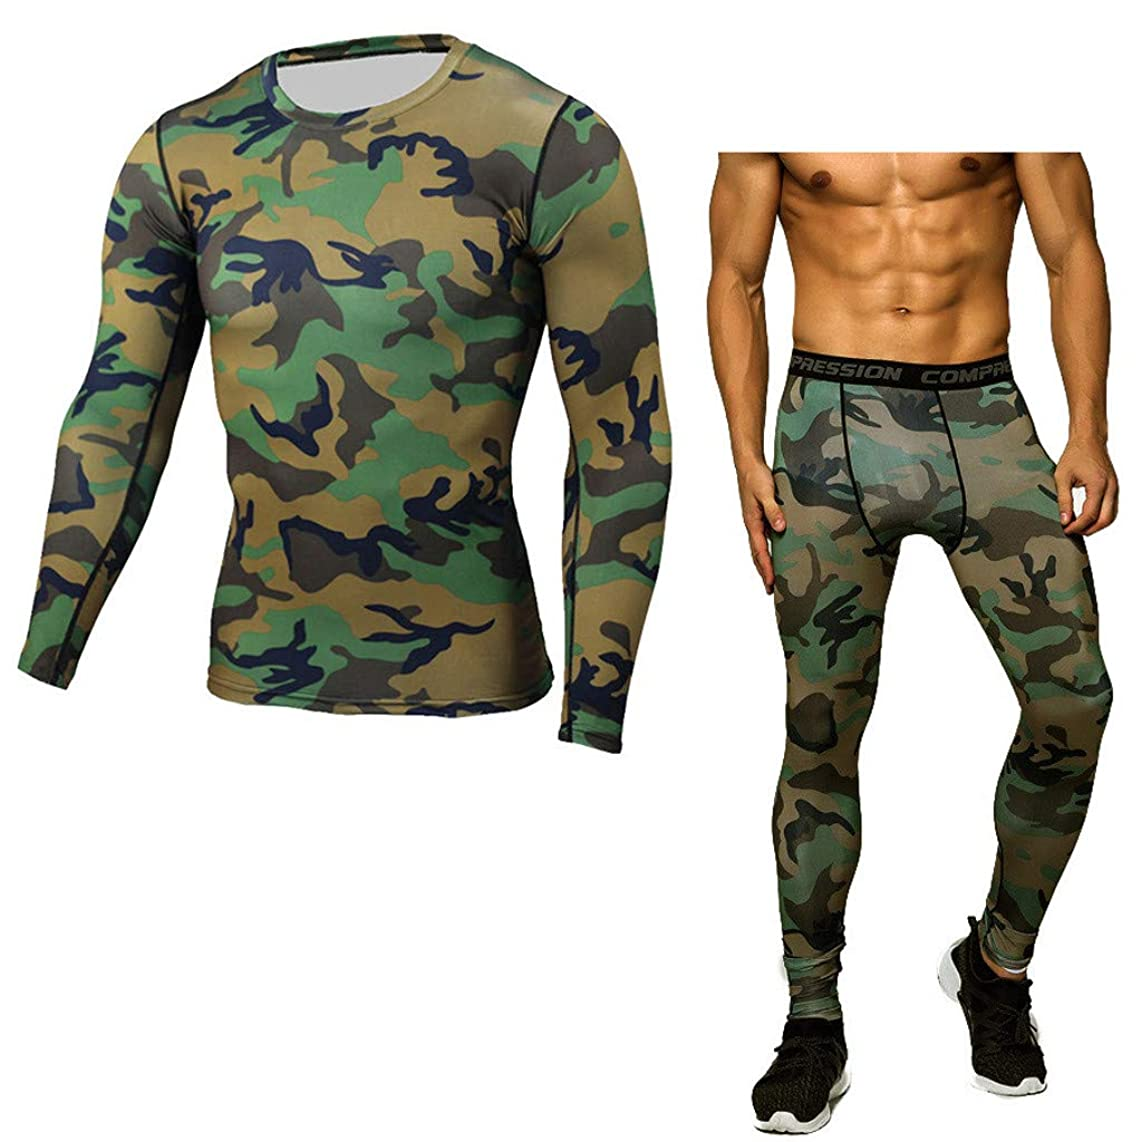 Men's Workout Clothes, Fitness t-Shirt Fast Drying Camouflage Printing Tops Pants Sports Suit Long Sleeve Tight Suit